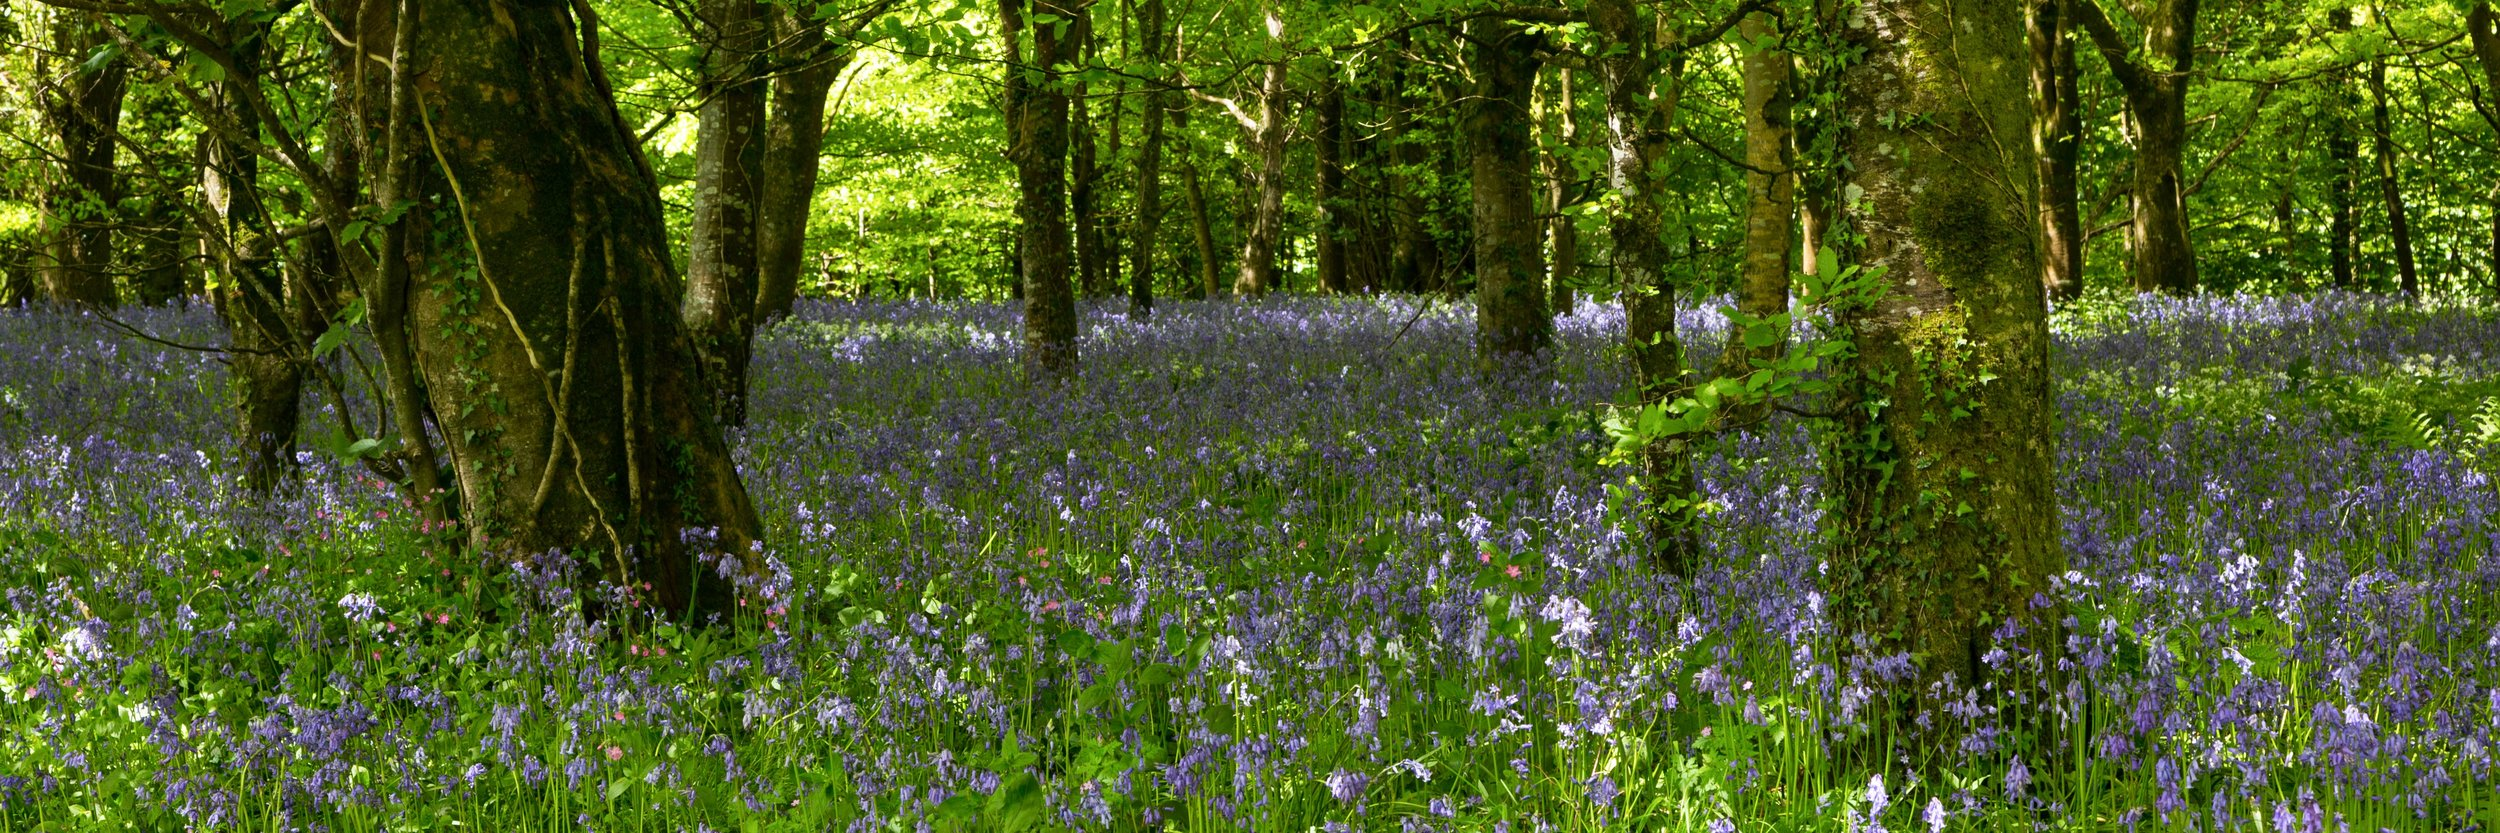 Vast bluebell areas in the Great Wood,Lanhydrock, Cornwall. Image:   Chris Denning, Verve Garden Design